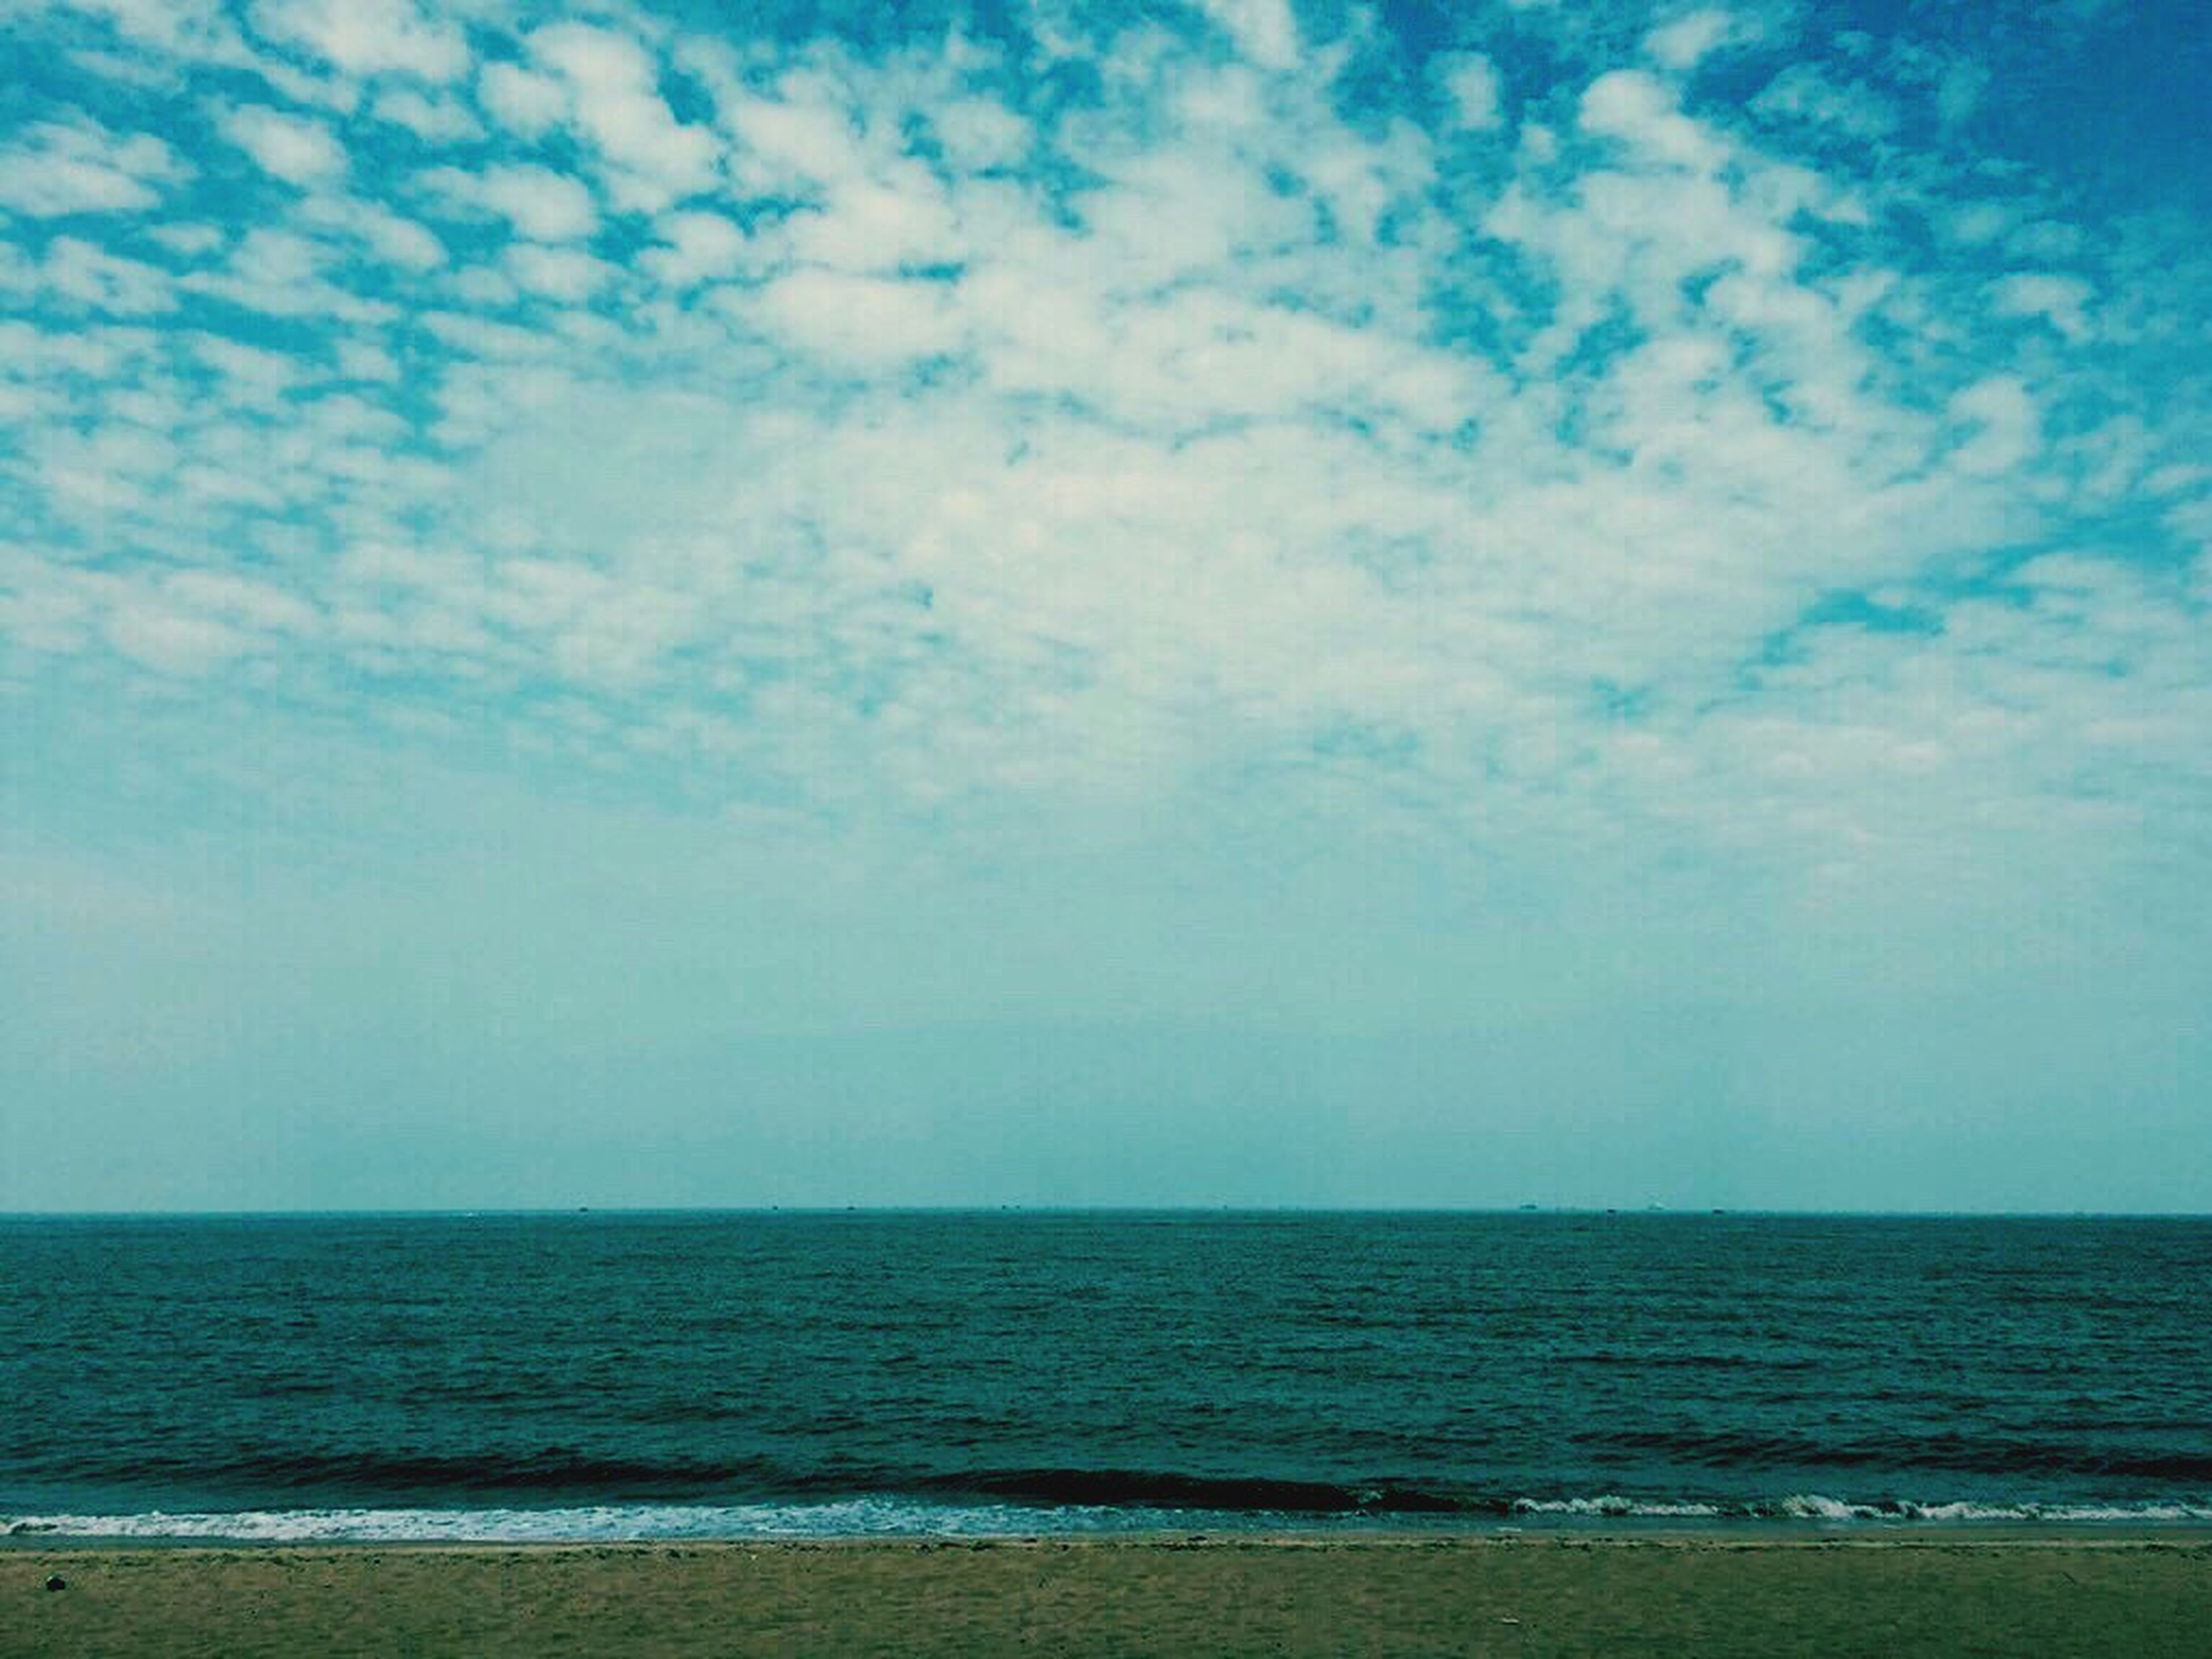 sea, horizon over water, beach, sky, water, scenics, tranquil scene, tranquility, beauty in nature, shore, blue, nature, cloud - sky, idyllic, sand, cloud, coastline, seascape, remote, cloudy